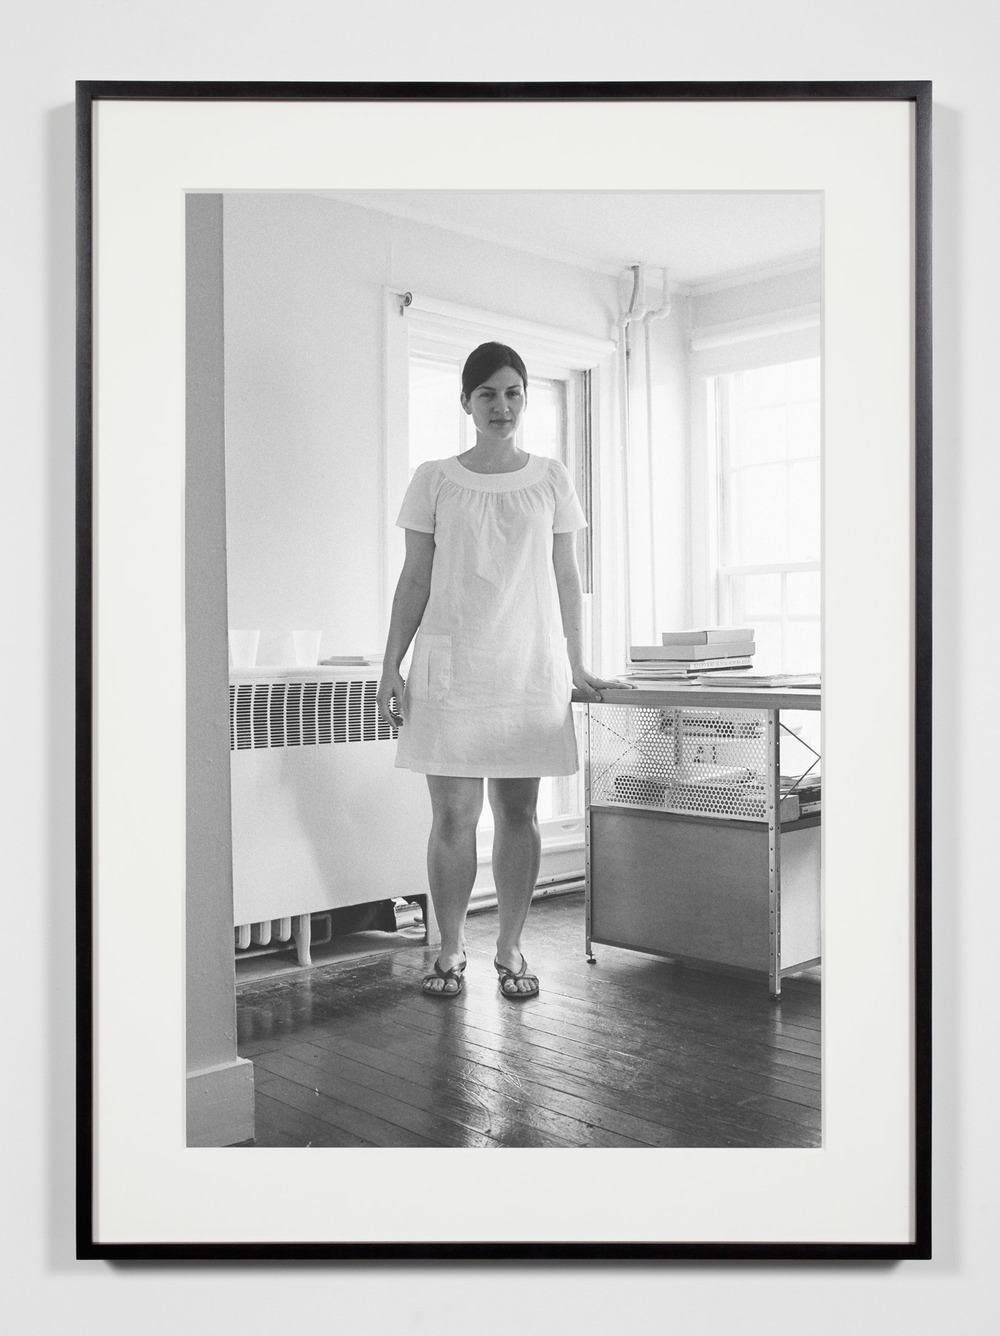 Nonprofit Executive Director/Magazine Publisher and Editor, Annandale-on-Hudson, New York, July 11, 2009    2011   Epson Ultrachrome K3 archival ink jet print on Hahnemühle Photo Rag paper  36 3/8 x 26 3/8 inches   Industrial Portraits, 2008–